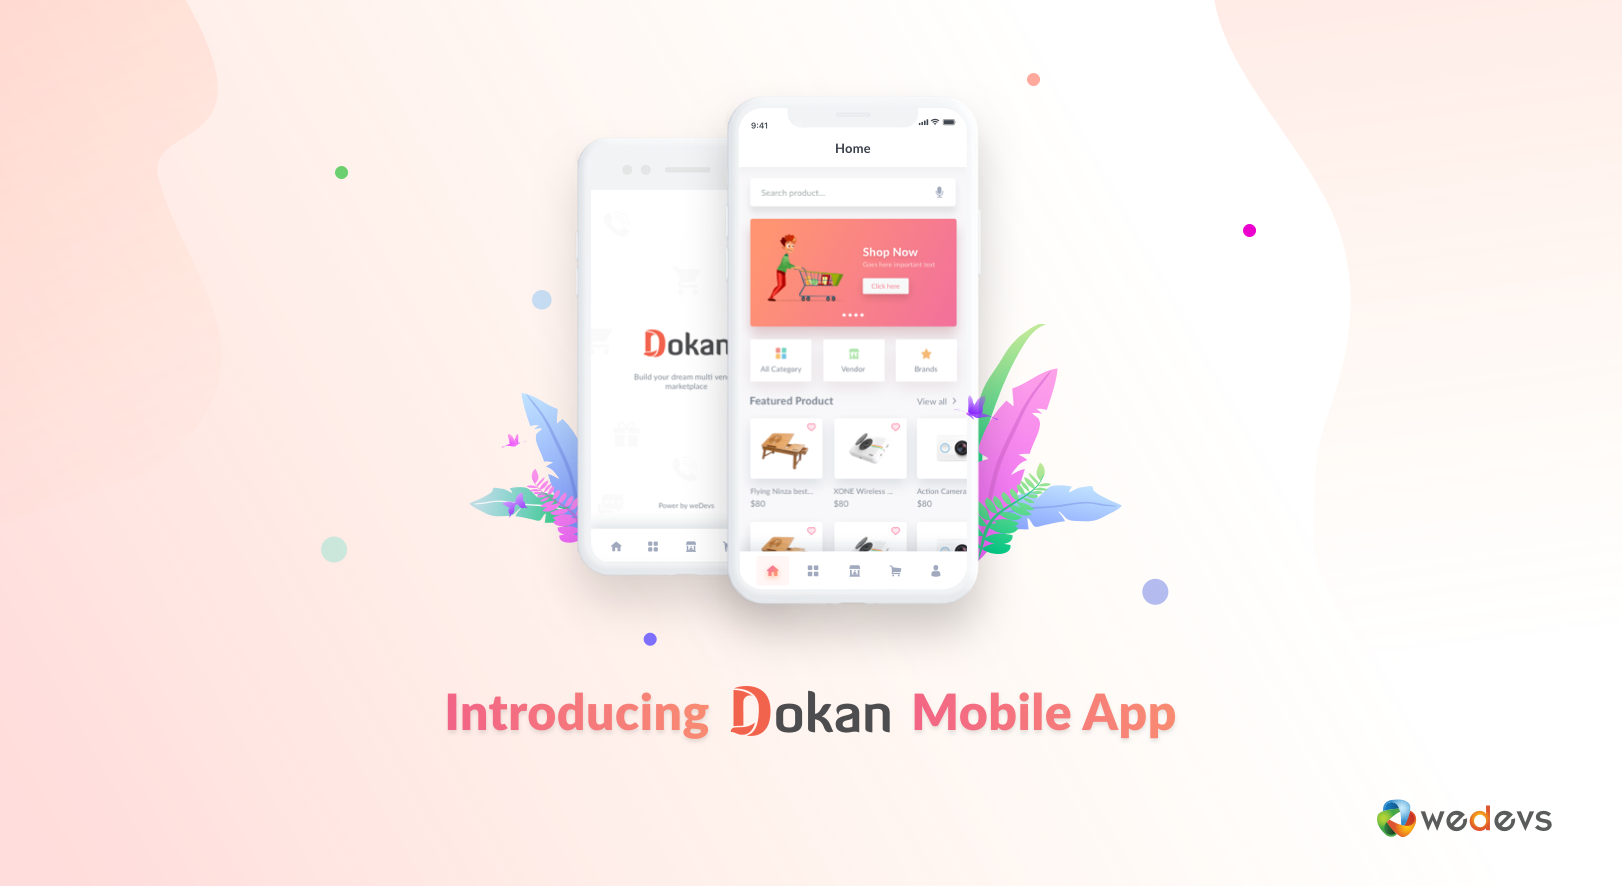 Introducing Dokan Mobile App: Time to Turn Your Customers' Journey into a Joyful One!